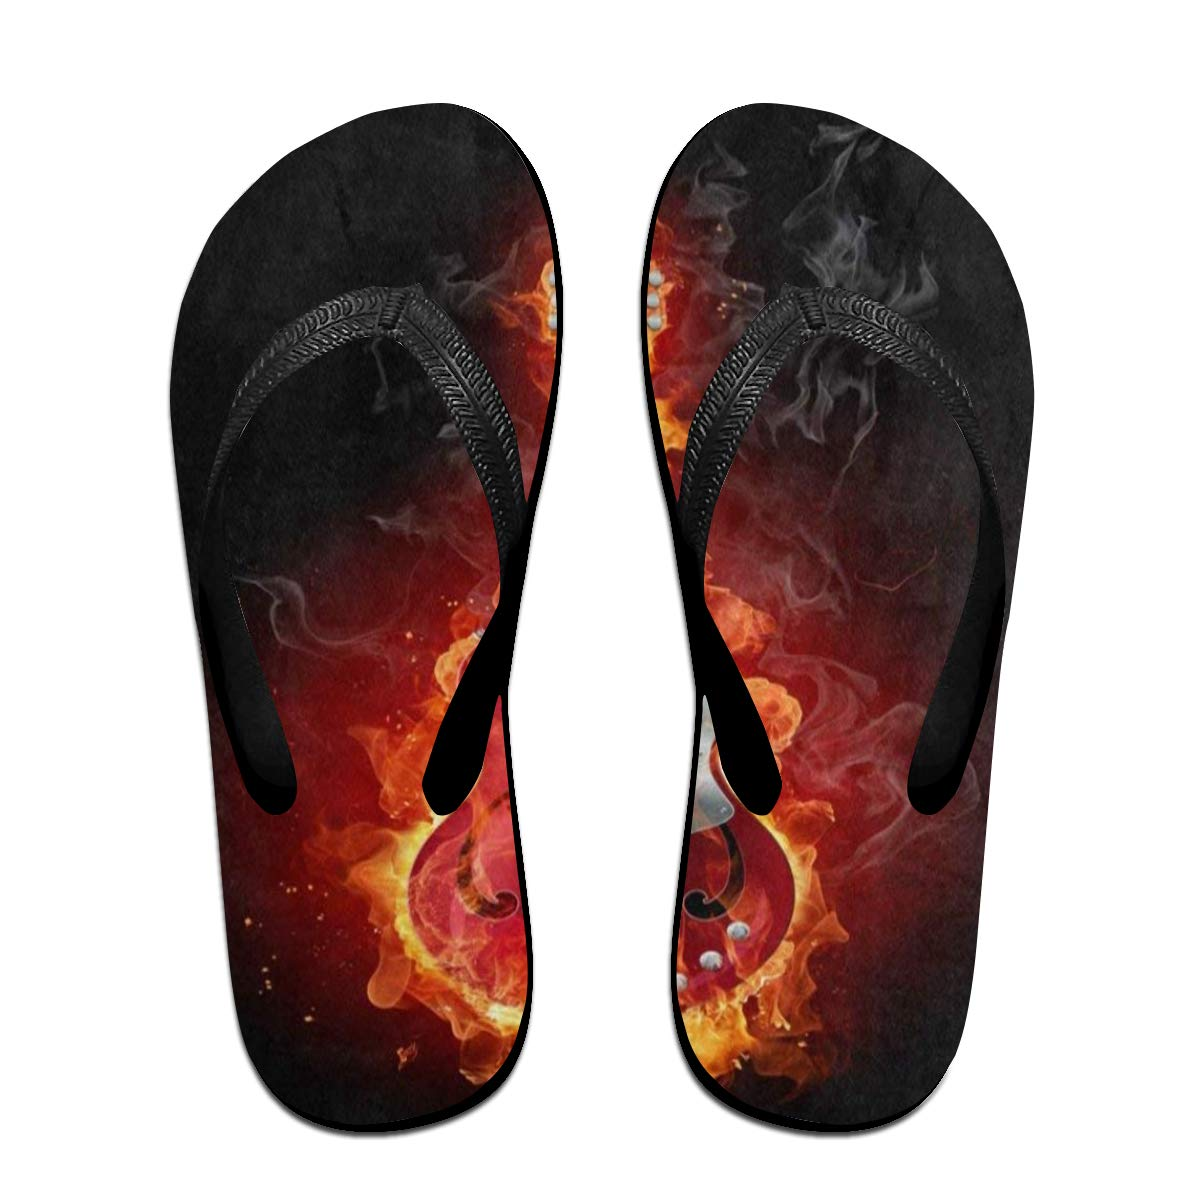 Ladninag Flip Flops Fire Electronic Guitar Womens Indoor Slippers Thong Sandals for Unisex